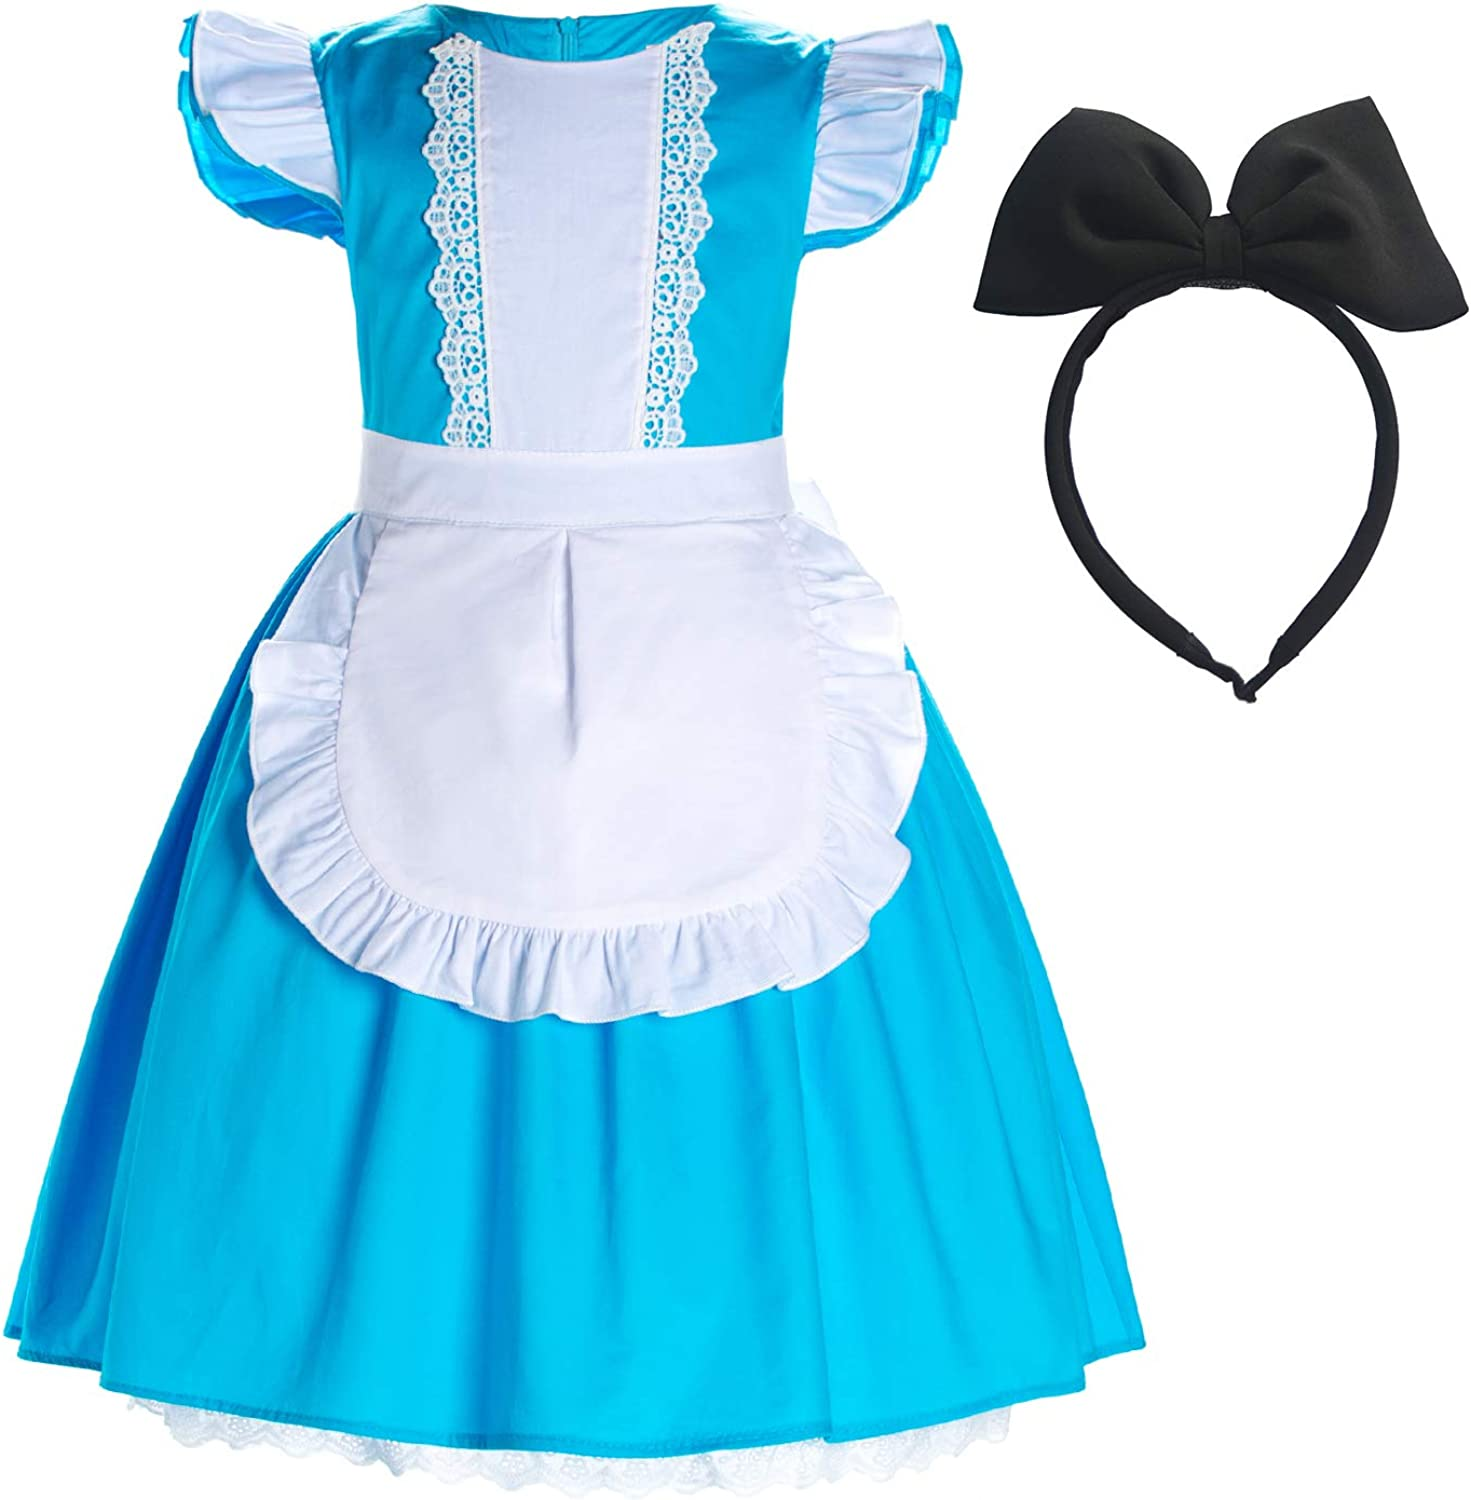 Party Chili Max 45% OFF Cotton Princess Costume Girls Dress Some reservation for Up Toddler